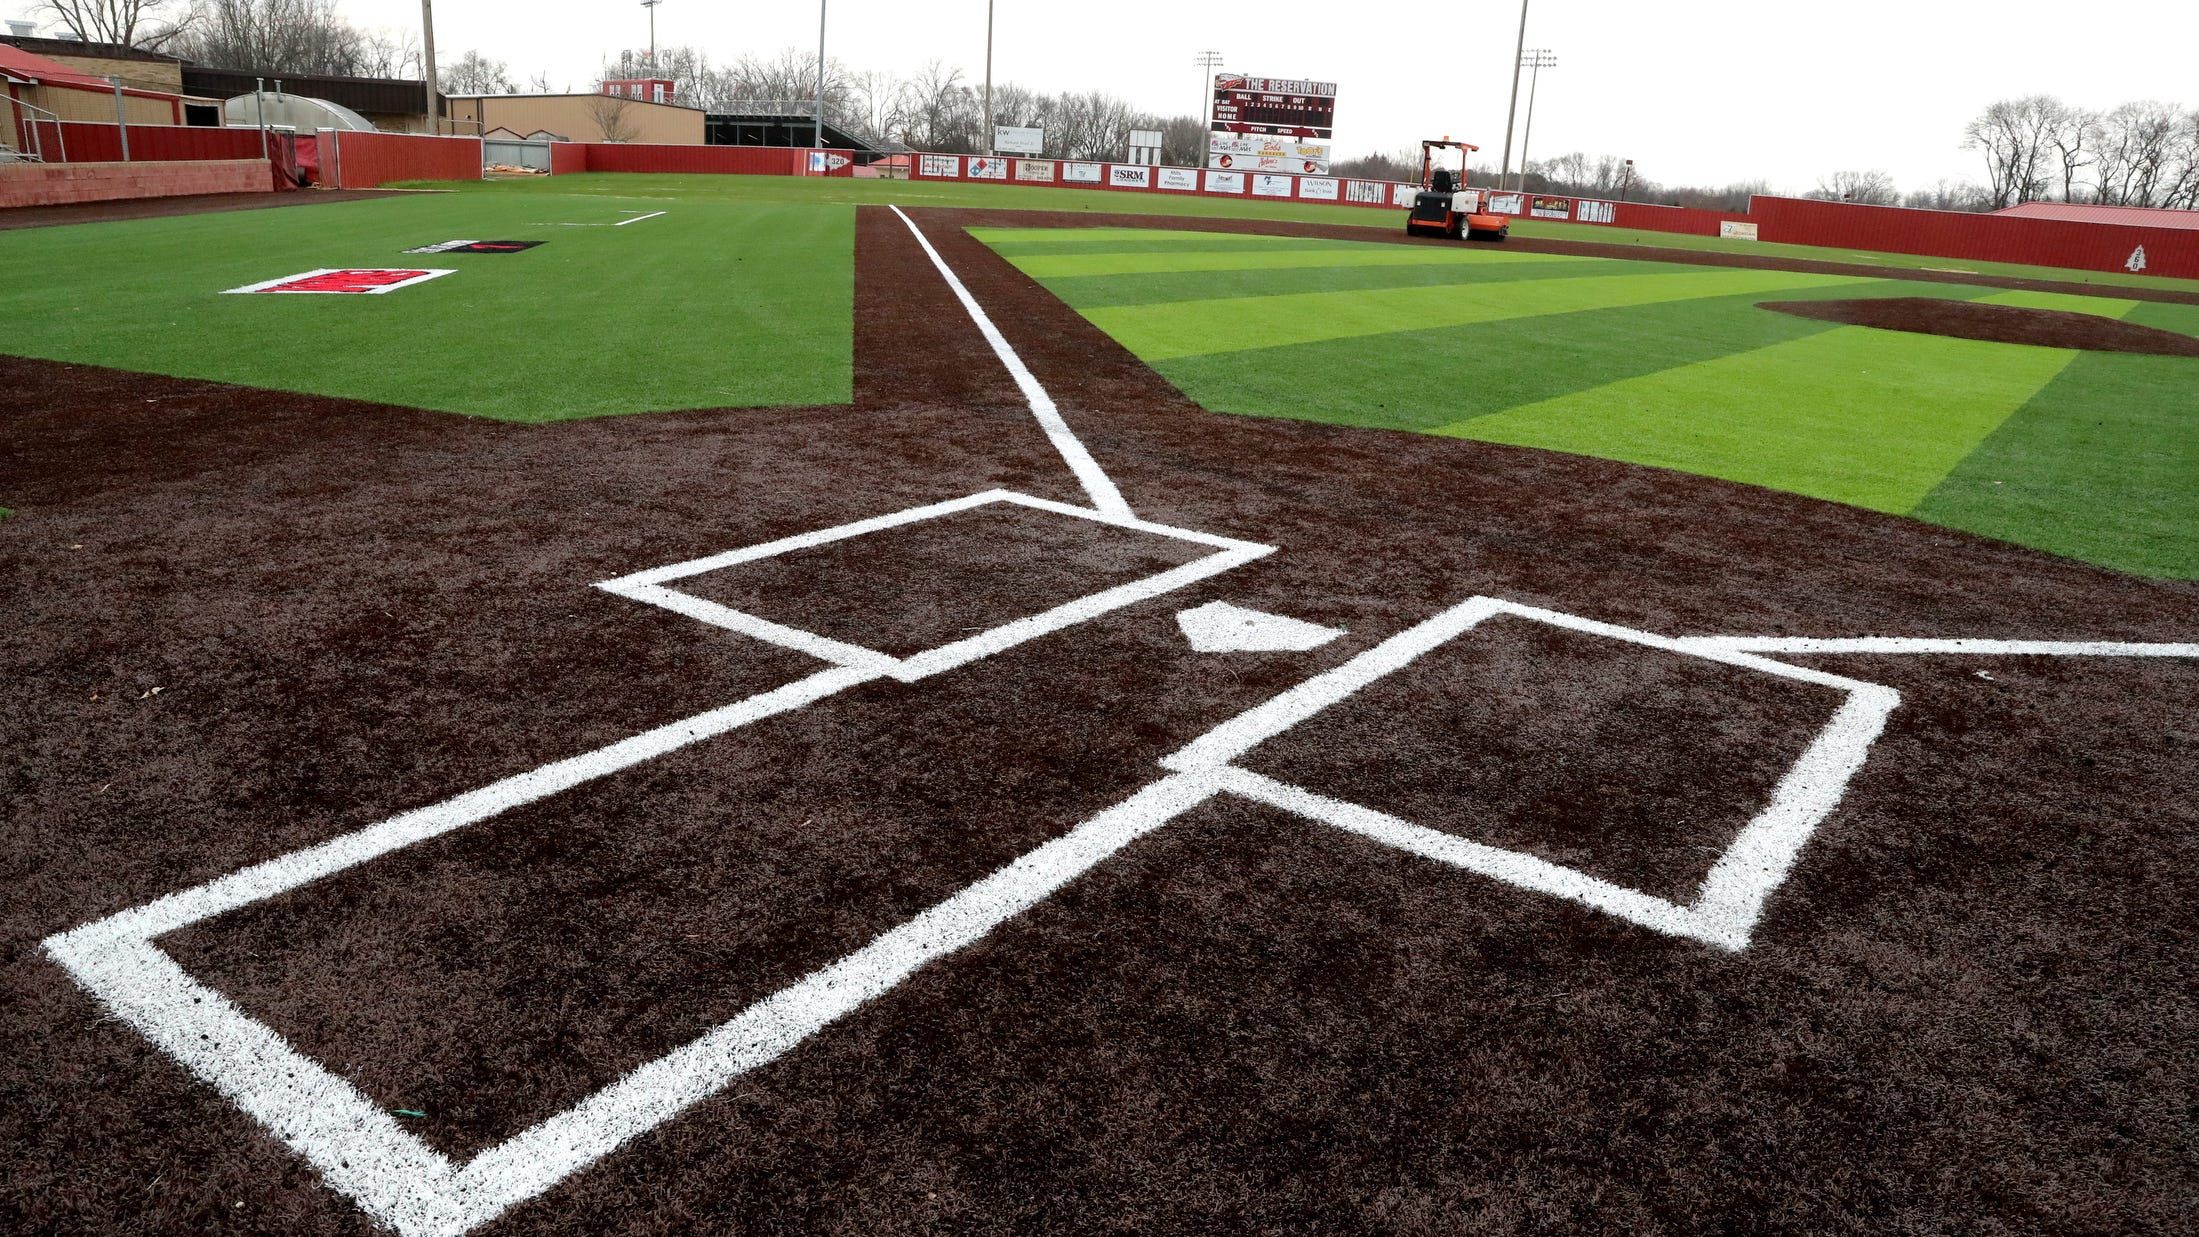 Riverdale Softball Baseball Fields Now Covered In Artificial Turf